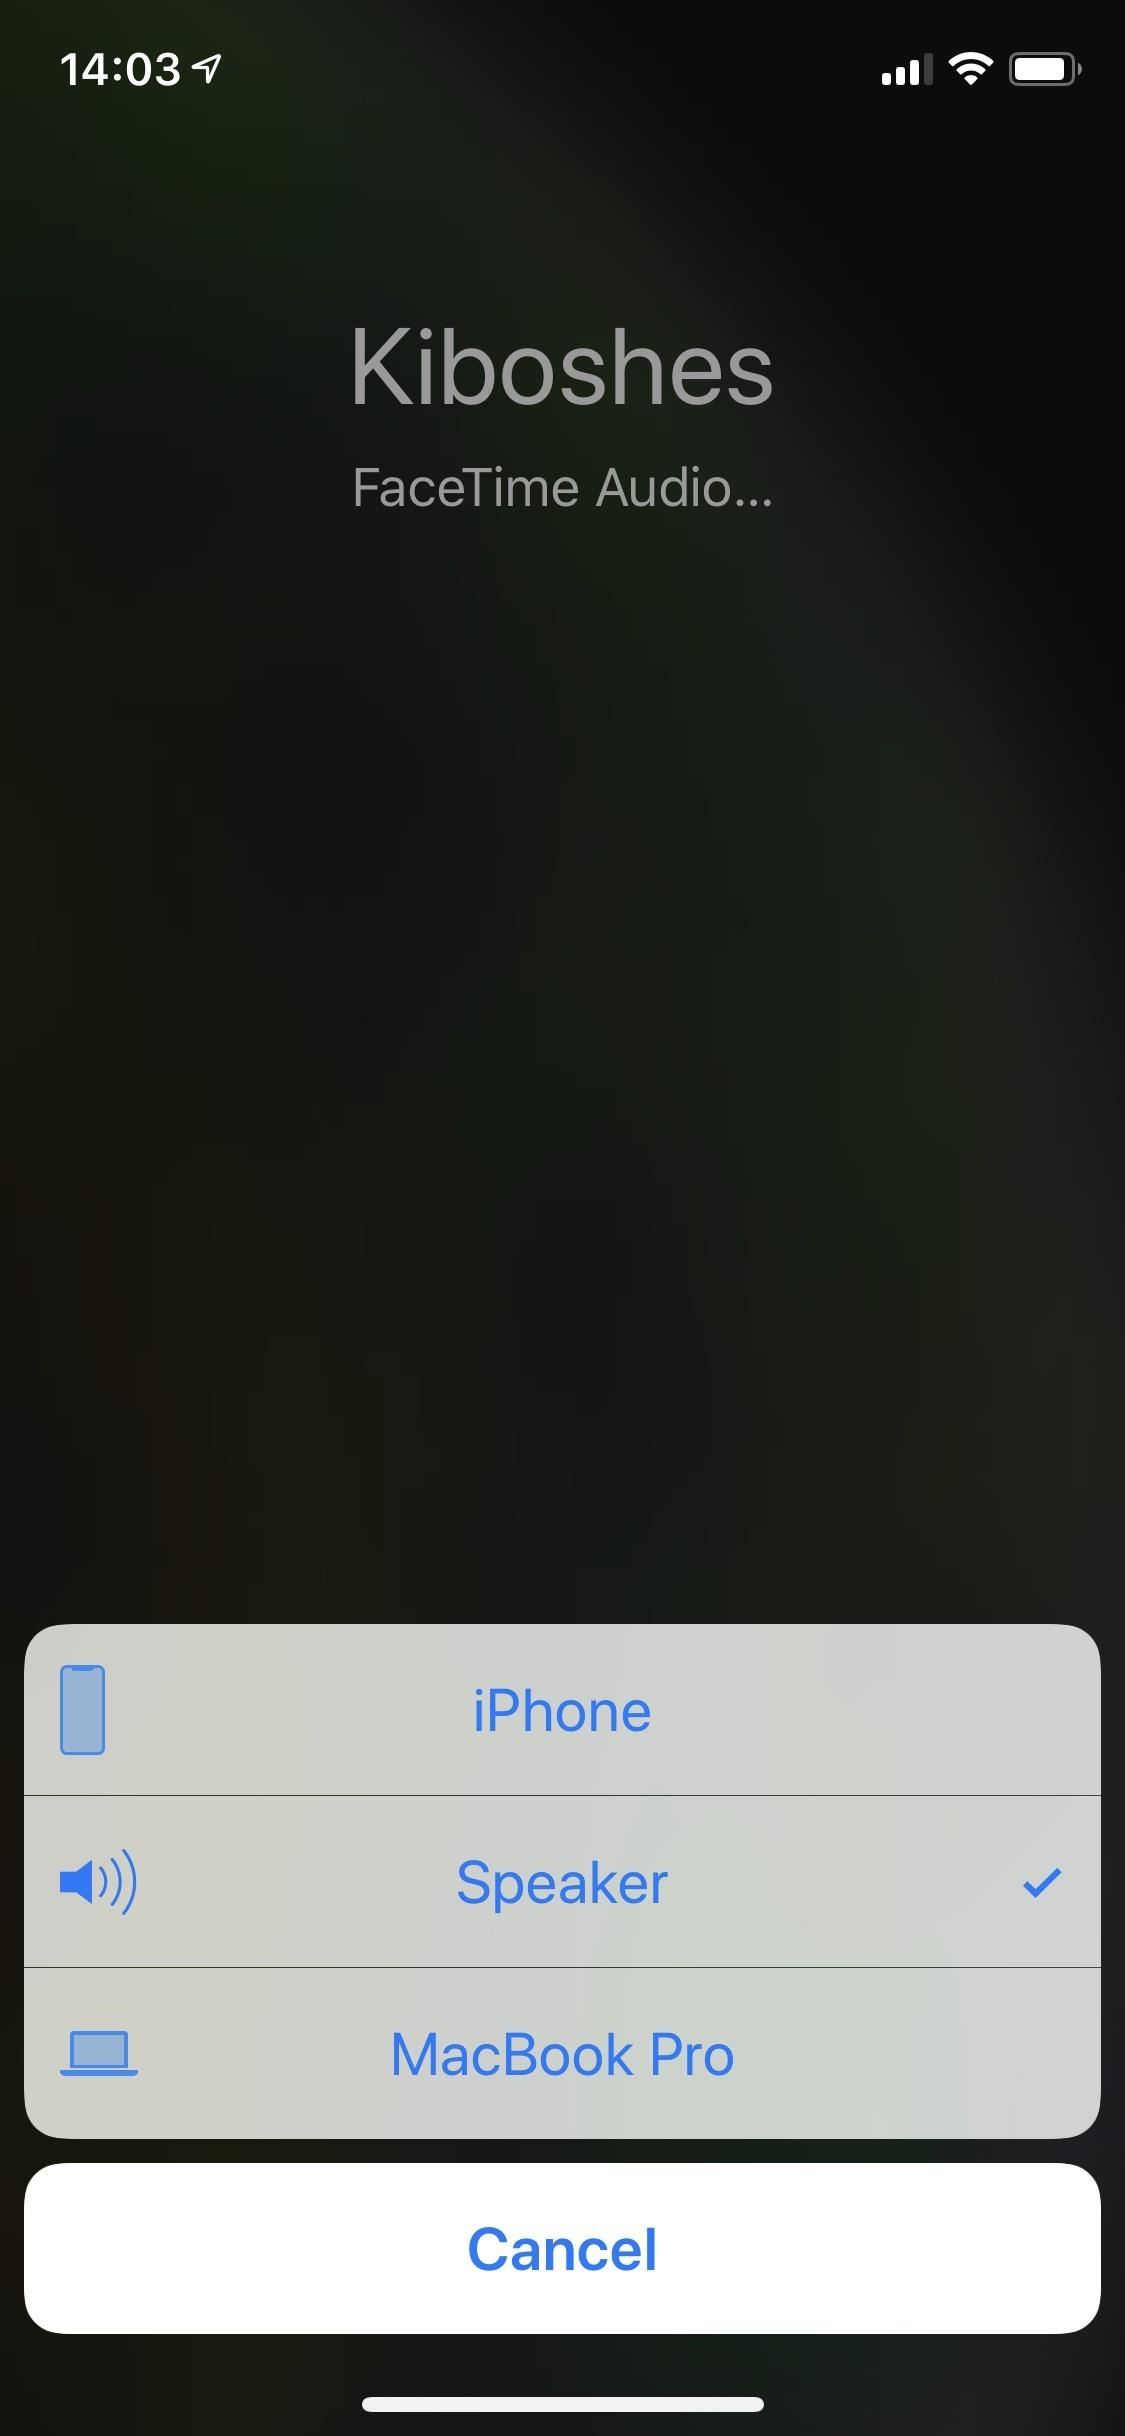 How to Turn Your iPhone's Speakerphone On Automatically for FaceTime Audio Calls